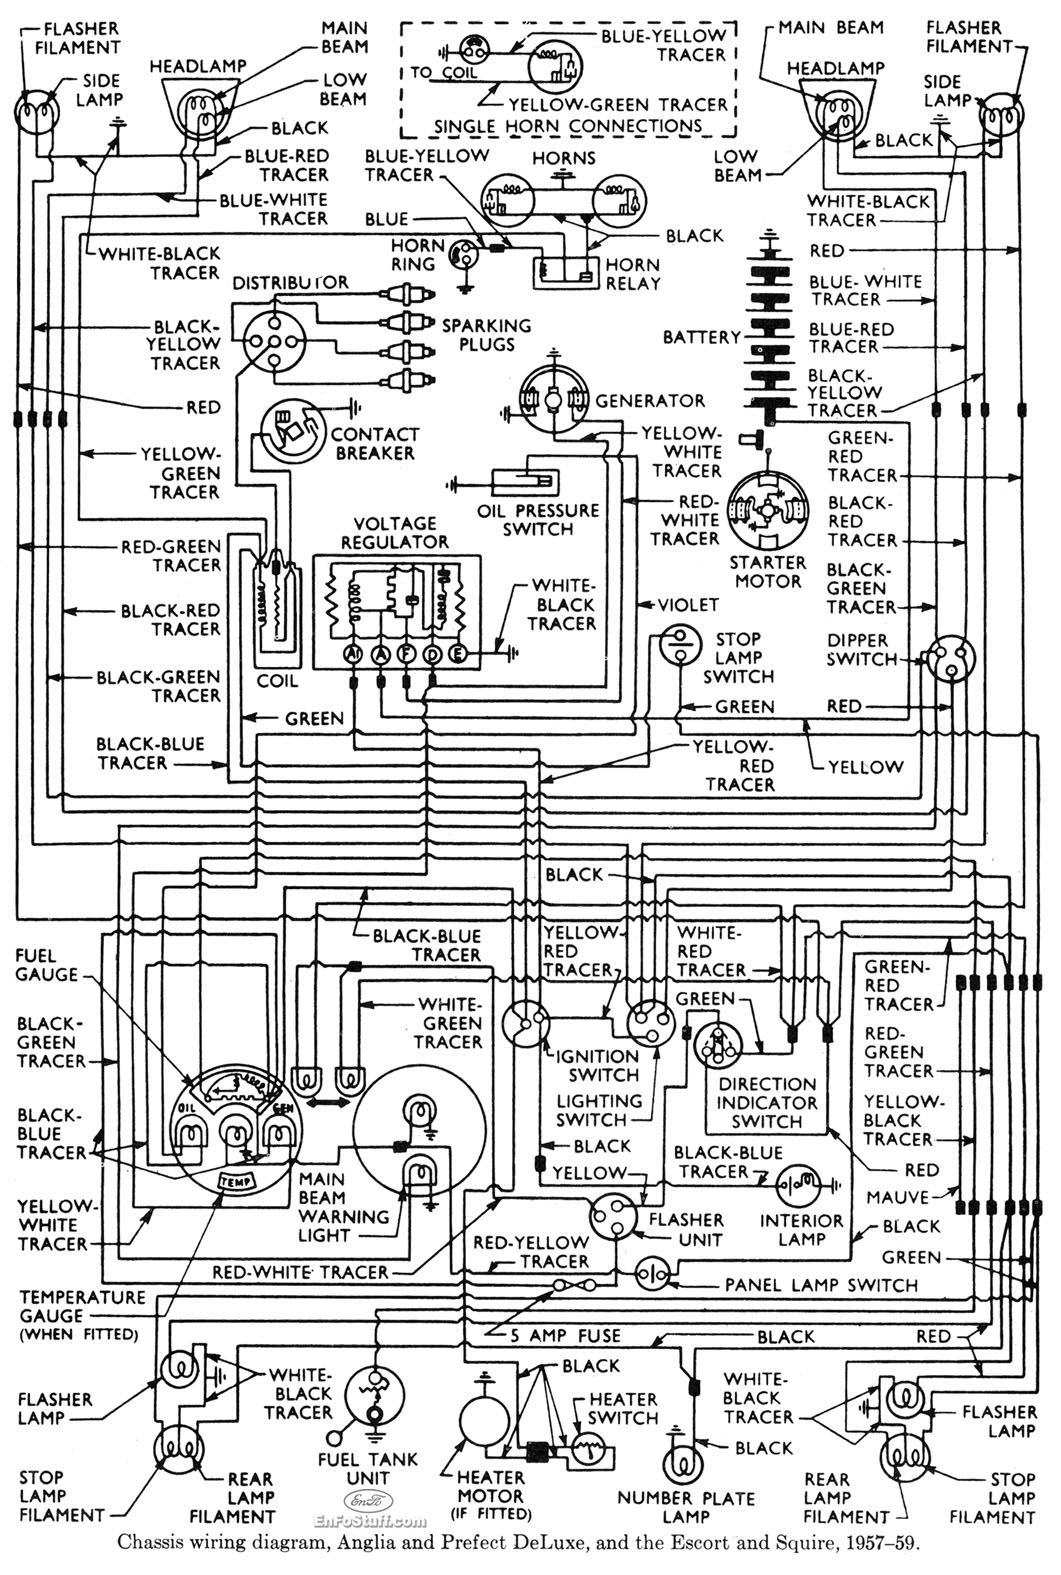 Wiring Diagram for Ford Anglia and Prefect DeLuxe, and the